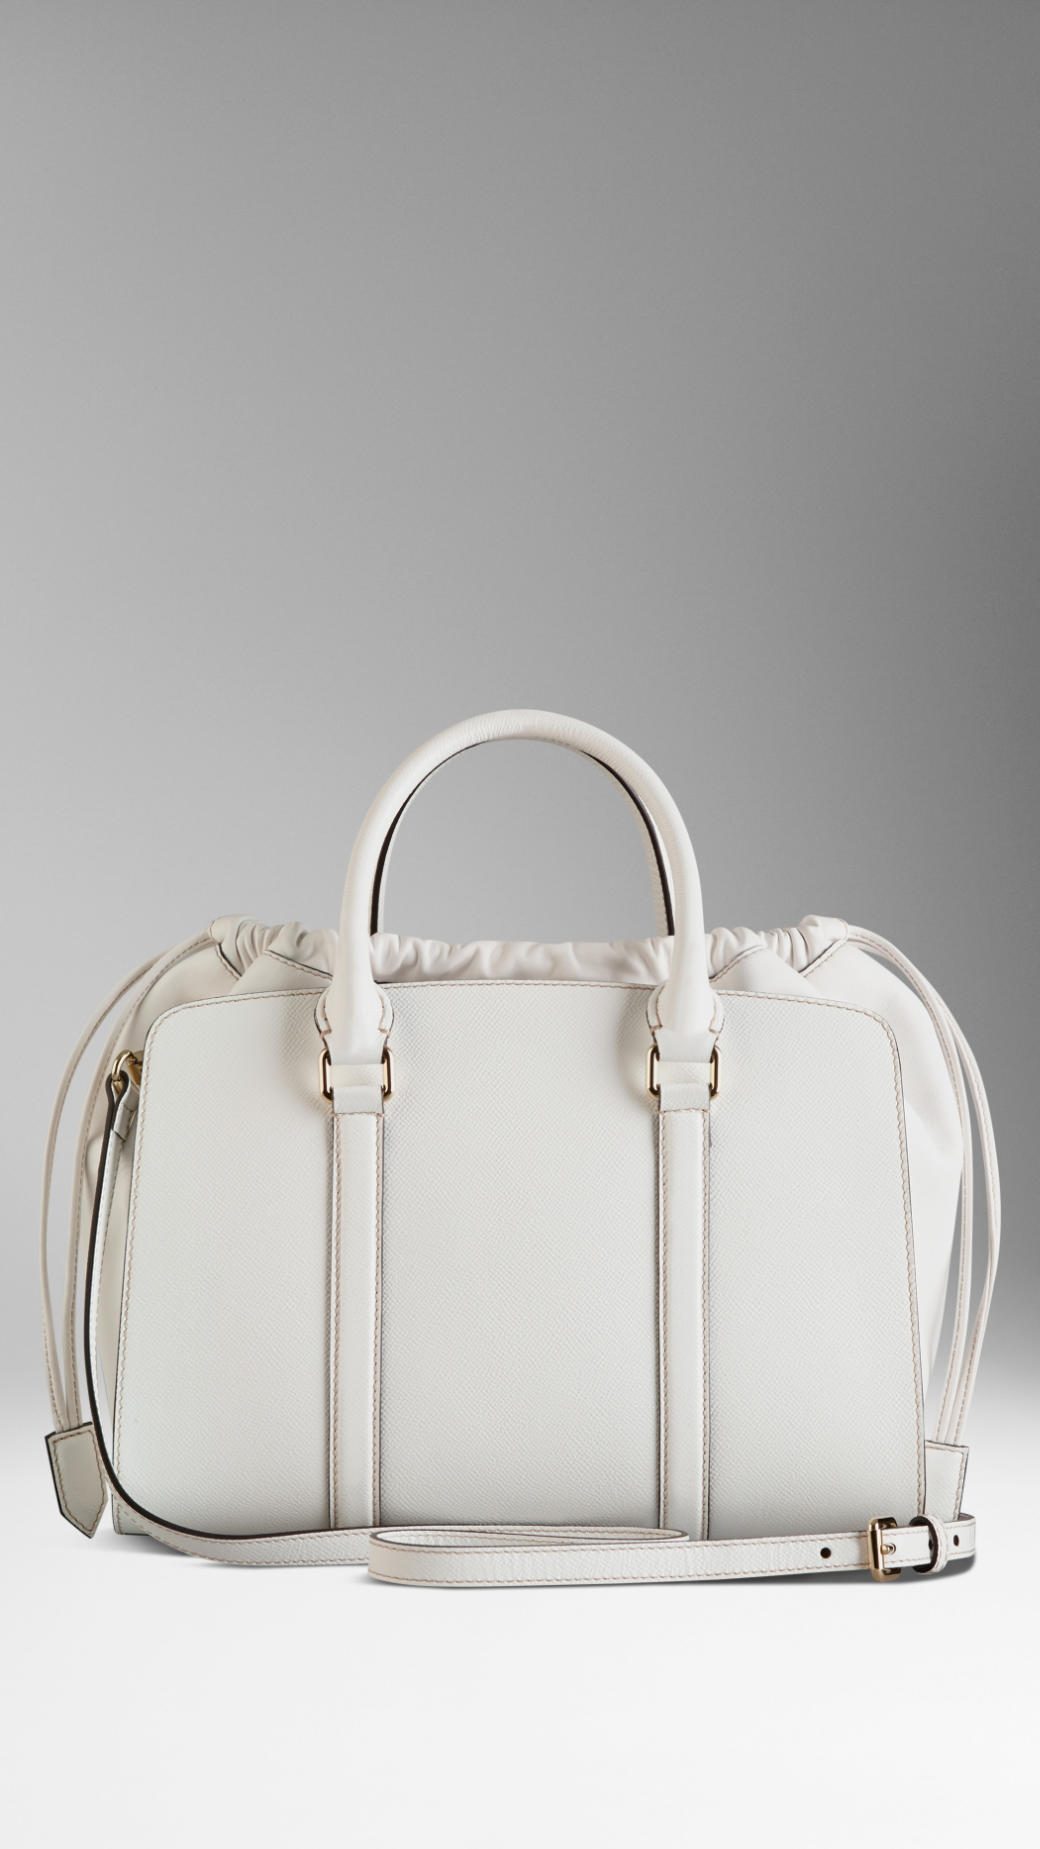 Lyst - Burberry Medium Patent London Leather Bag in White d200bf54354b7